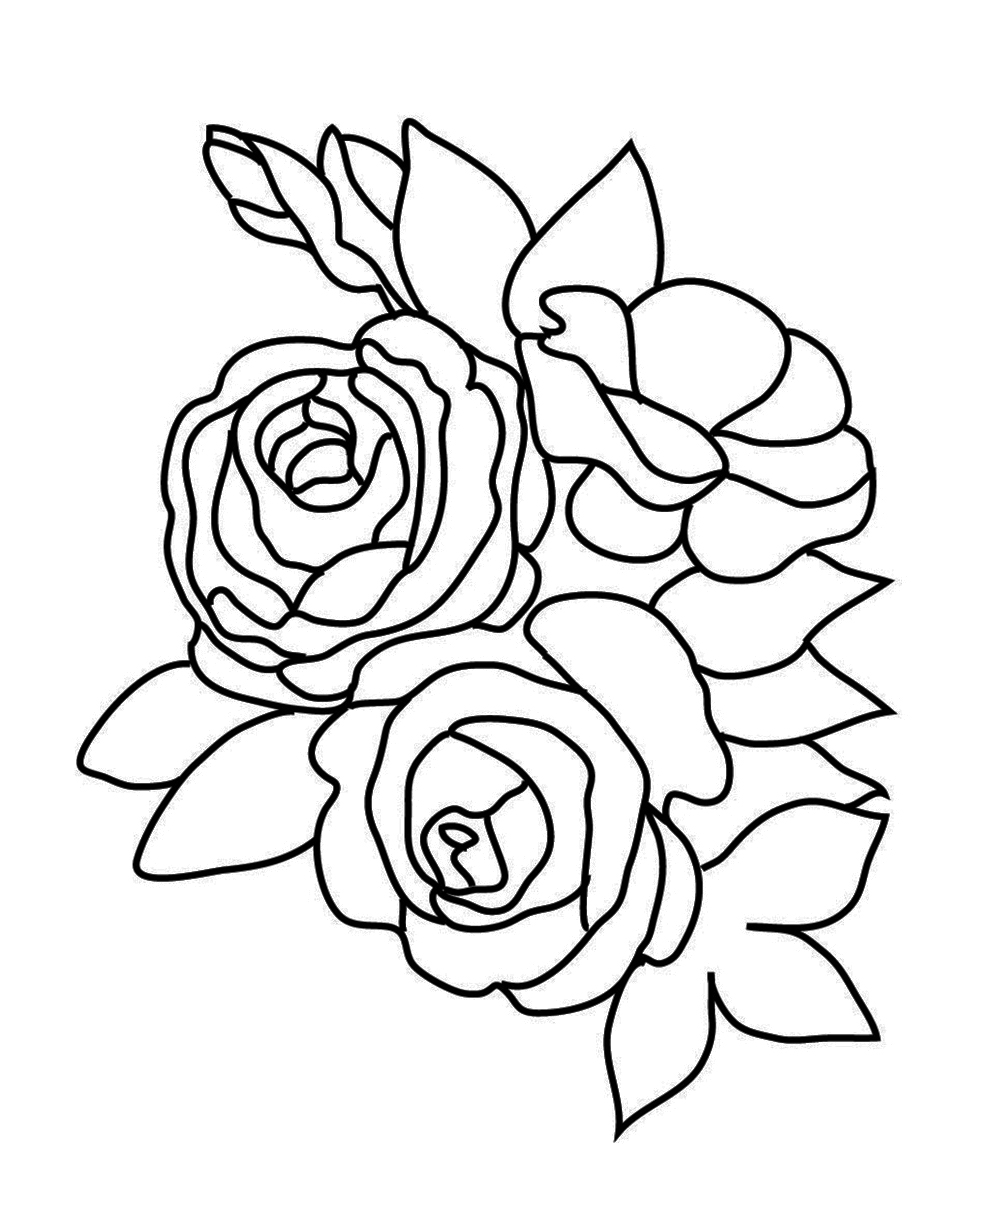 rose colouring pages flower coloring pages colouring pages rose